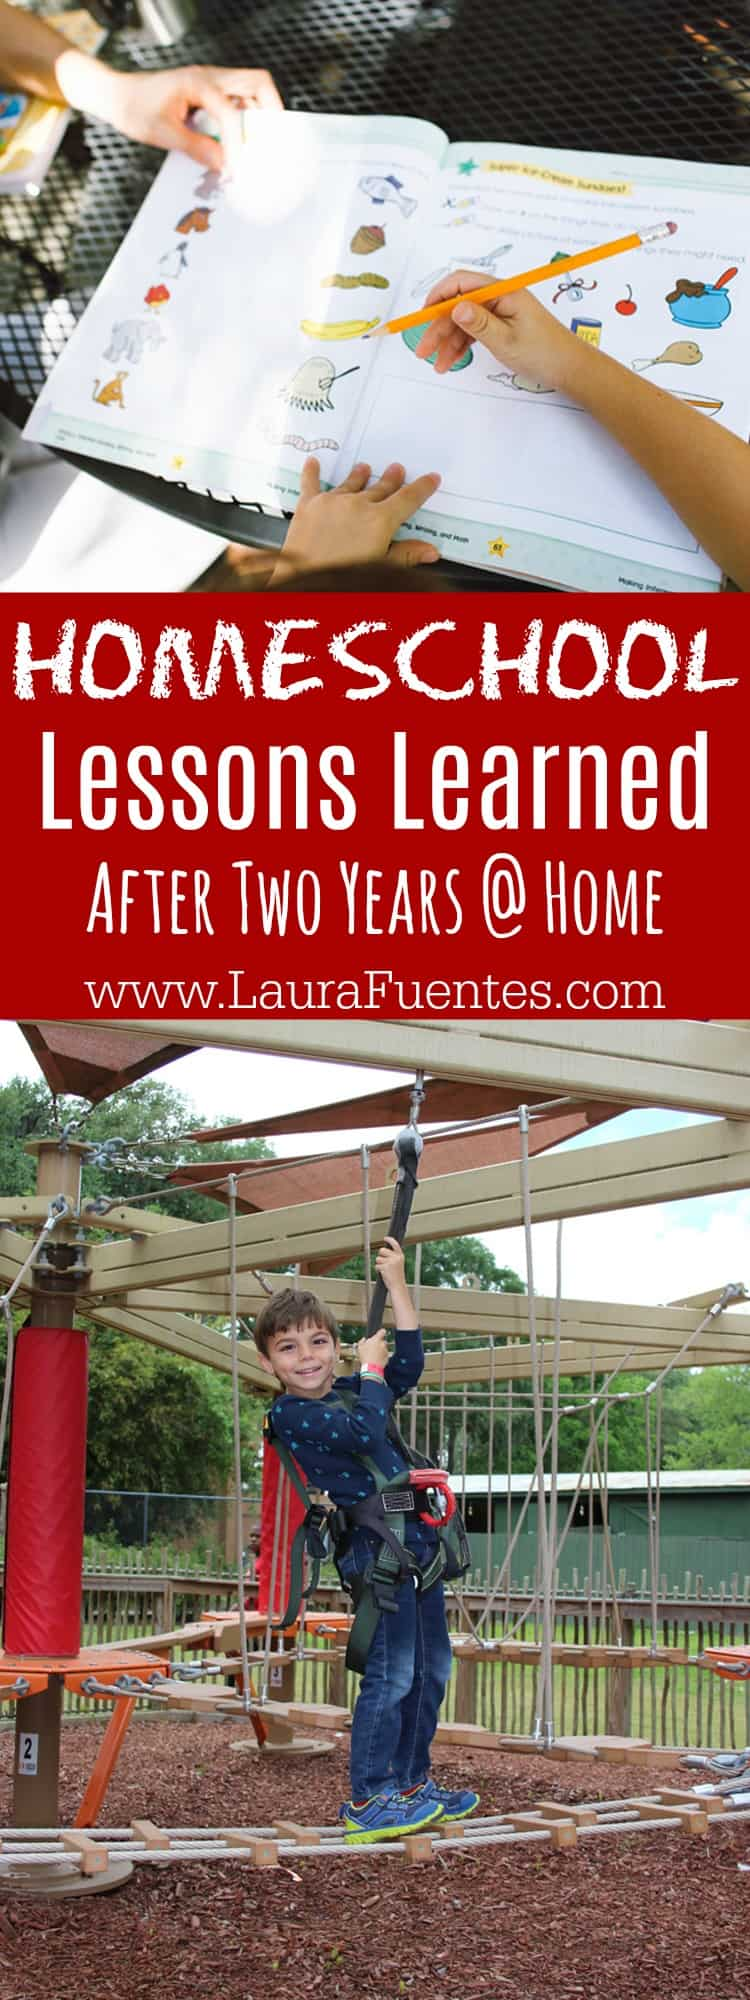 After two years of homeschooling, these are the lessons I've taken away.